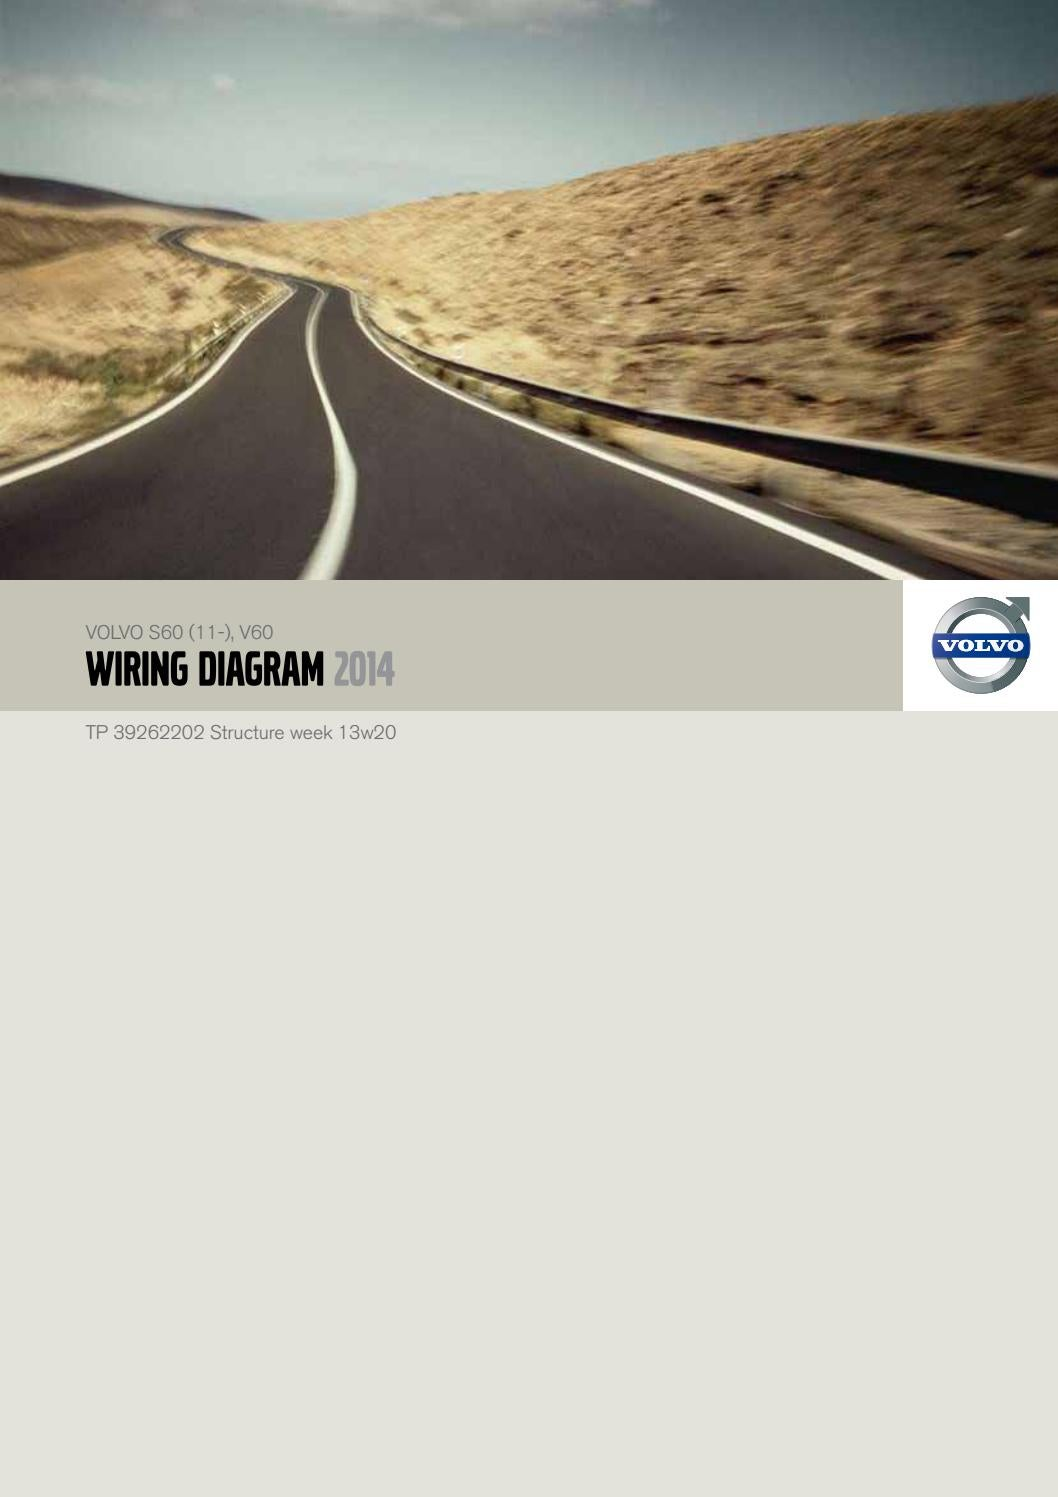 Volvo S60 V60 2014 Electrical Wiring Diagram Manual Instant – Download by  heydownloads - issuu | Volvo S60 Window Wiring Diagram |  | Issuu